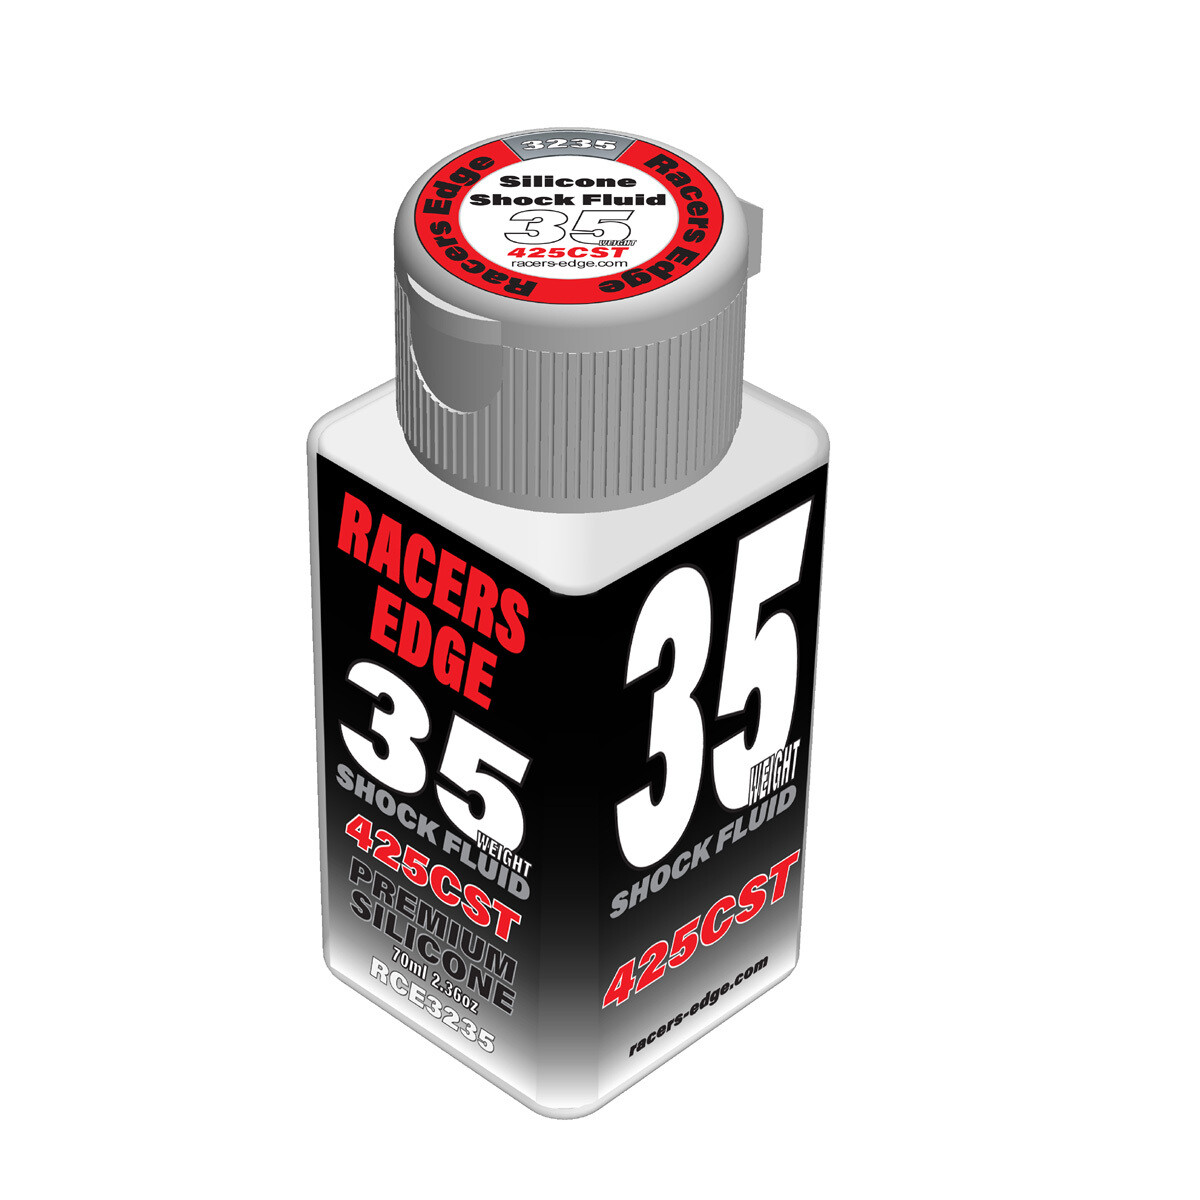 Racers Edge 35 Weight, 425cSt, 70ml 2.36oz Pure Silicone Shock Oil RCE3235